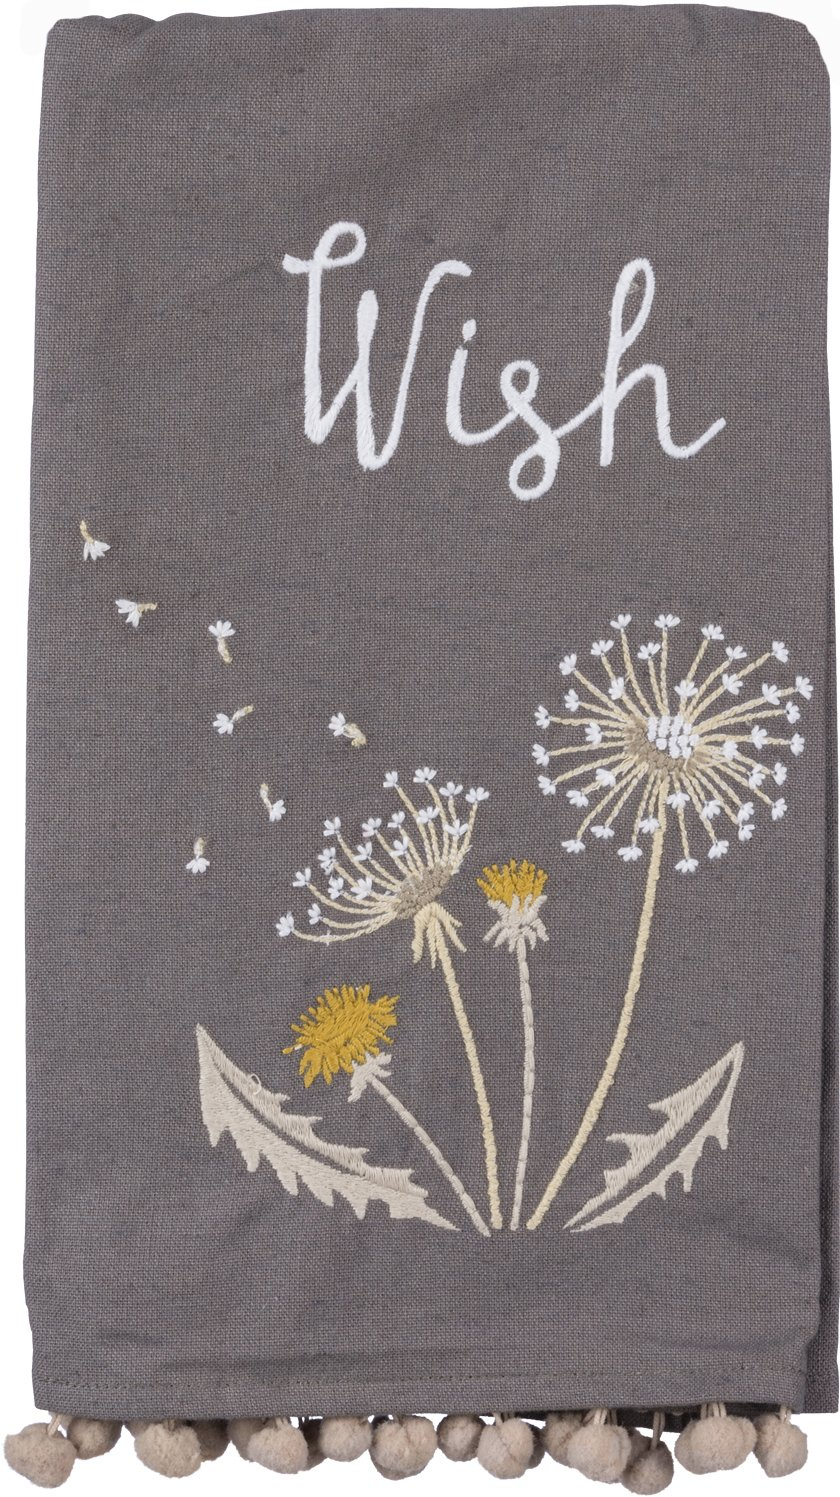 Primitives by Kathy ''Wish Kitchen Towel - Embroidered Dandelion with Windswept Seeds - 20'' x 26'' Premium Cotton/Linen Dishtowel with Pom-Pom Accents - 2018 Botanical Collection